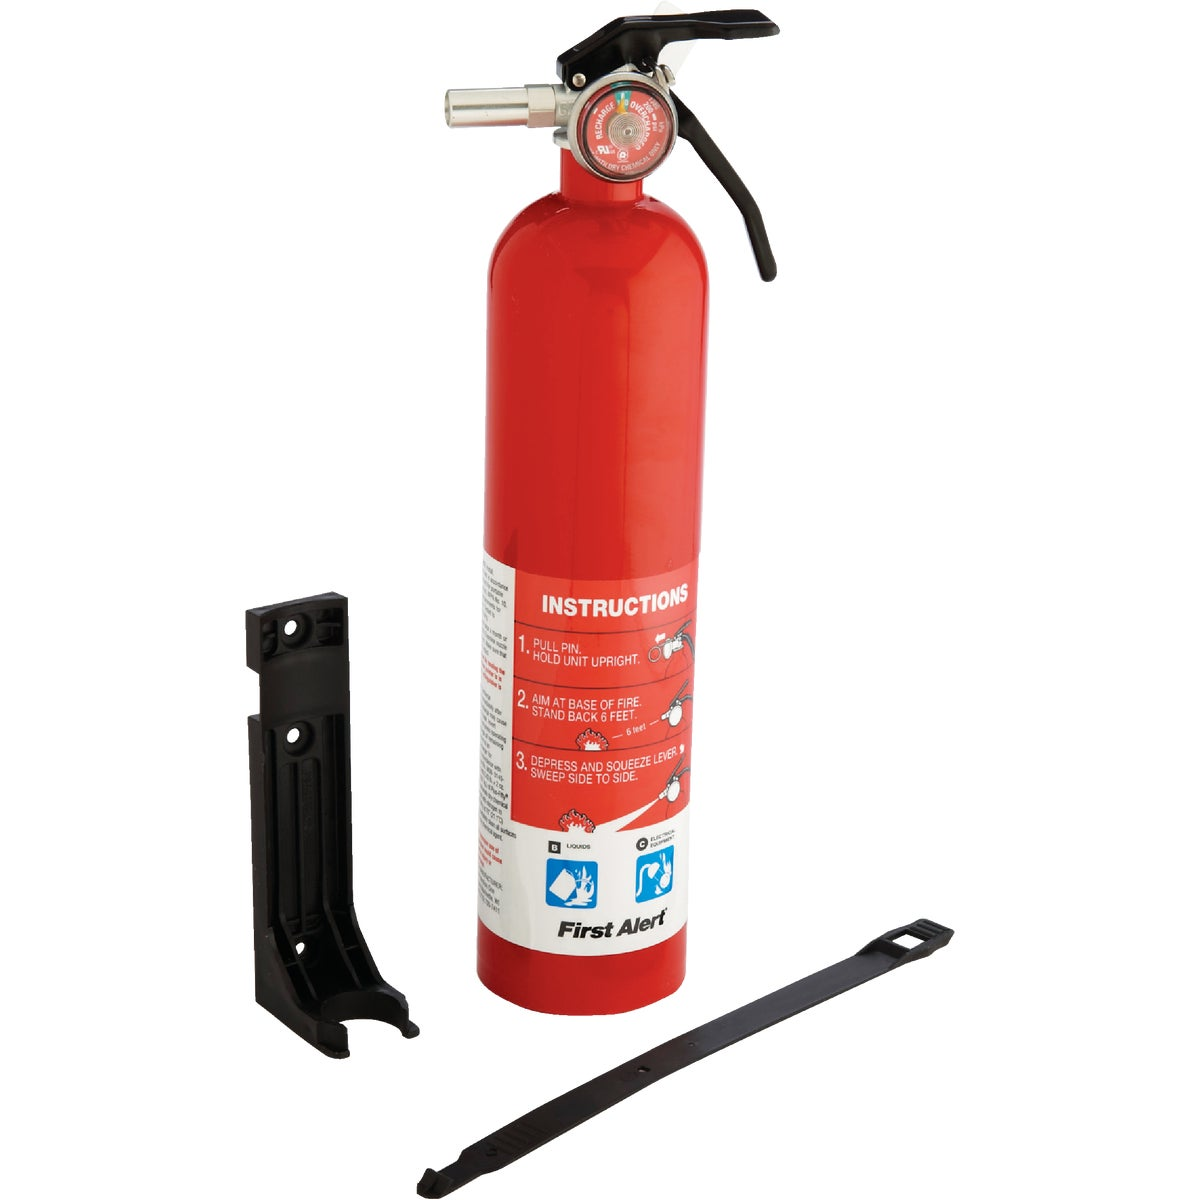 10 BC FIRE EXTINGUISHER - GARAGE10 by First Alert  Jarden